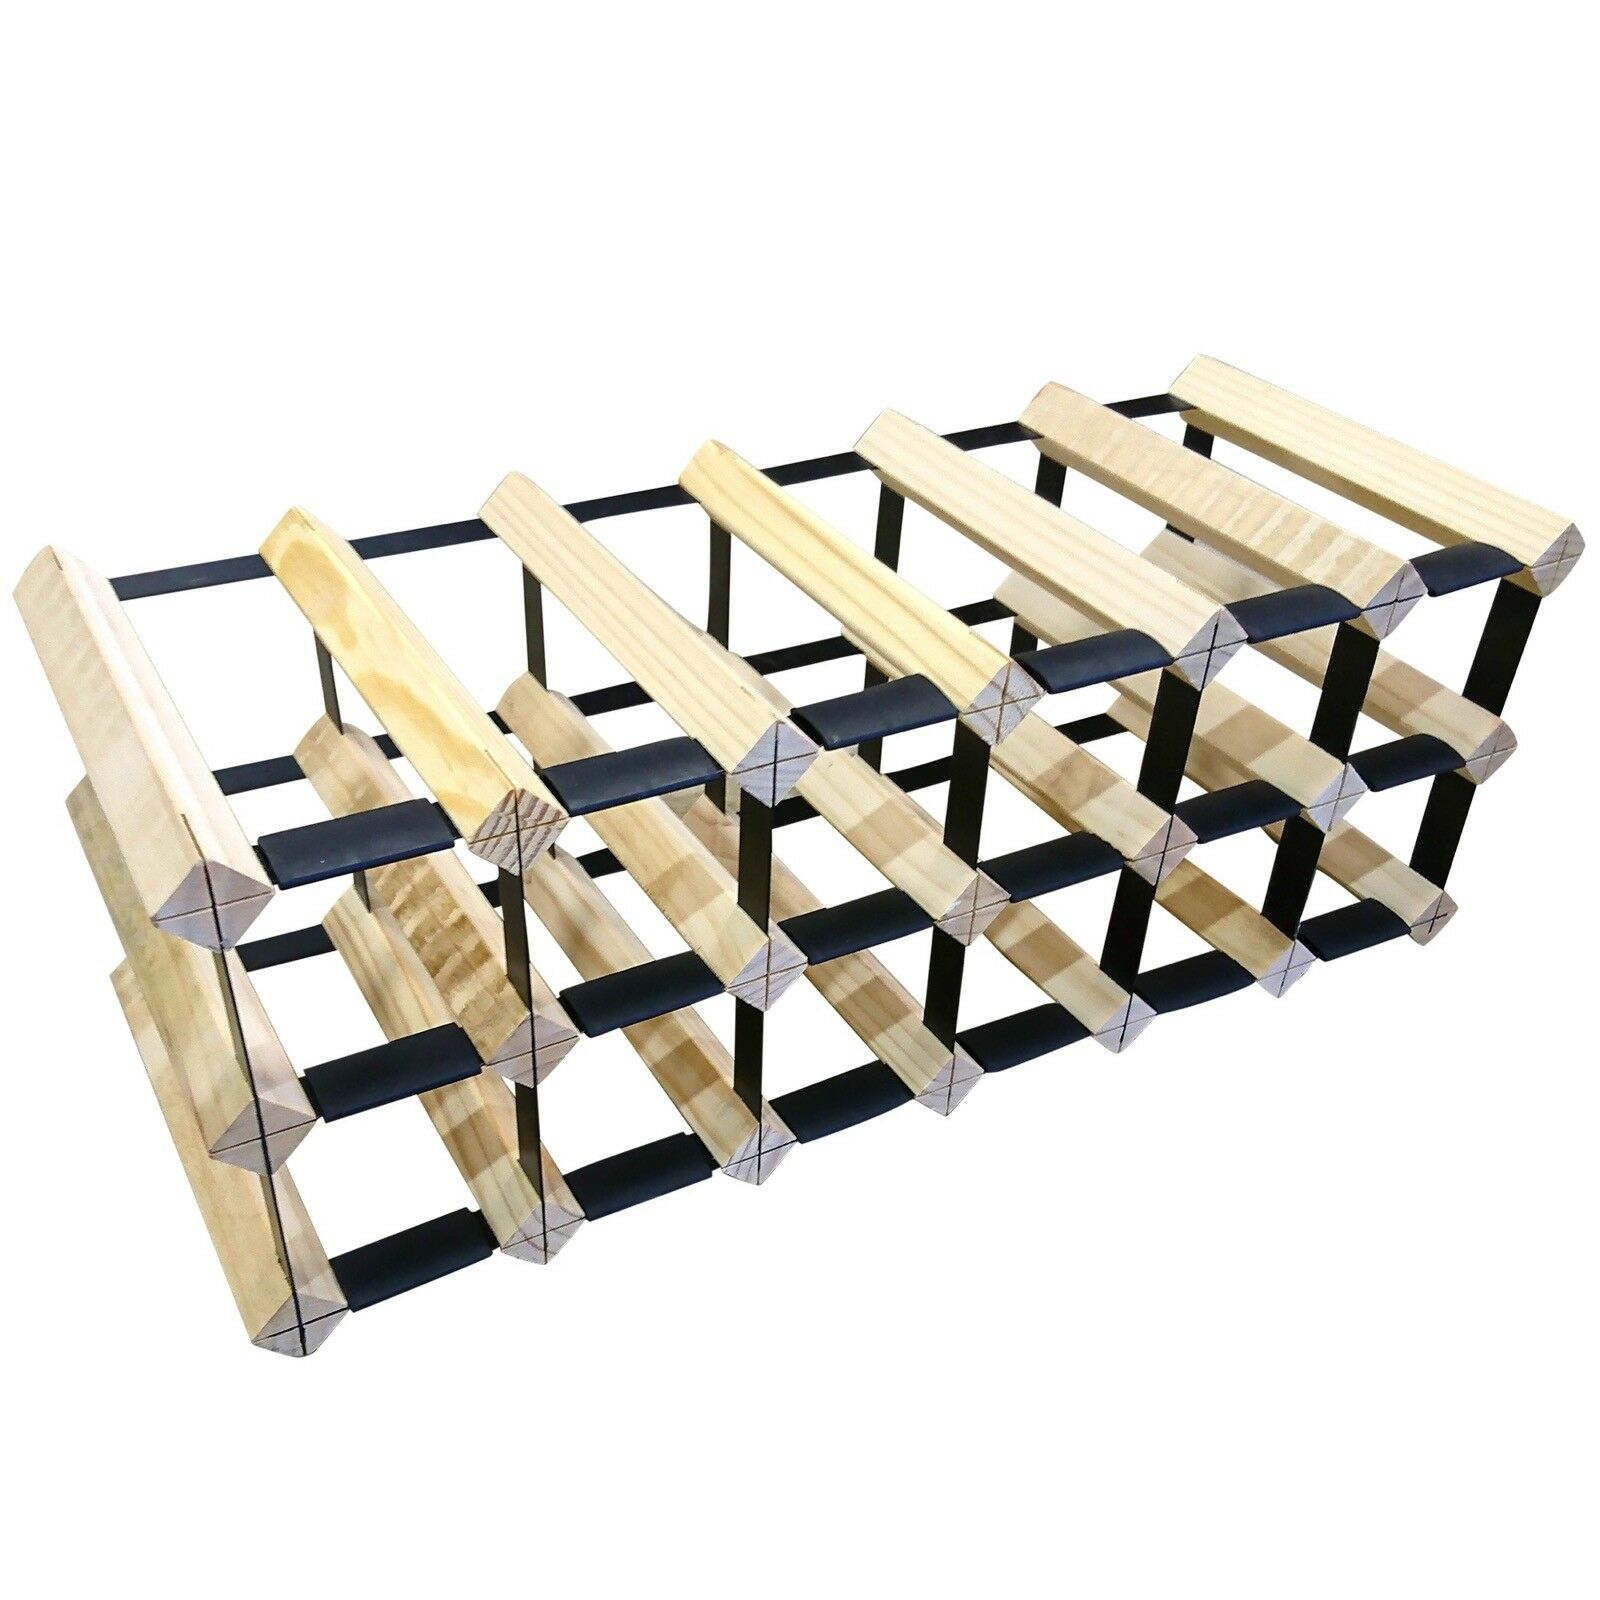 18 Bottle Timber Wine Rack - Slim Edition - Wine Stash + Free Assembly & Postage